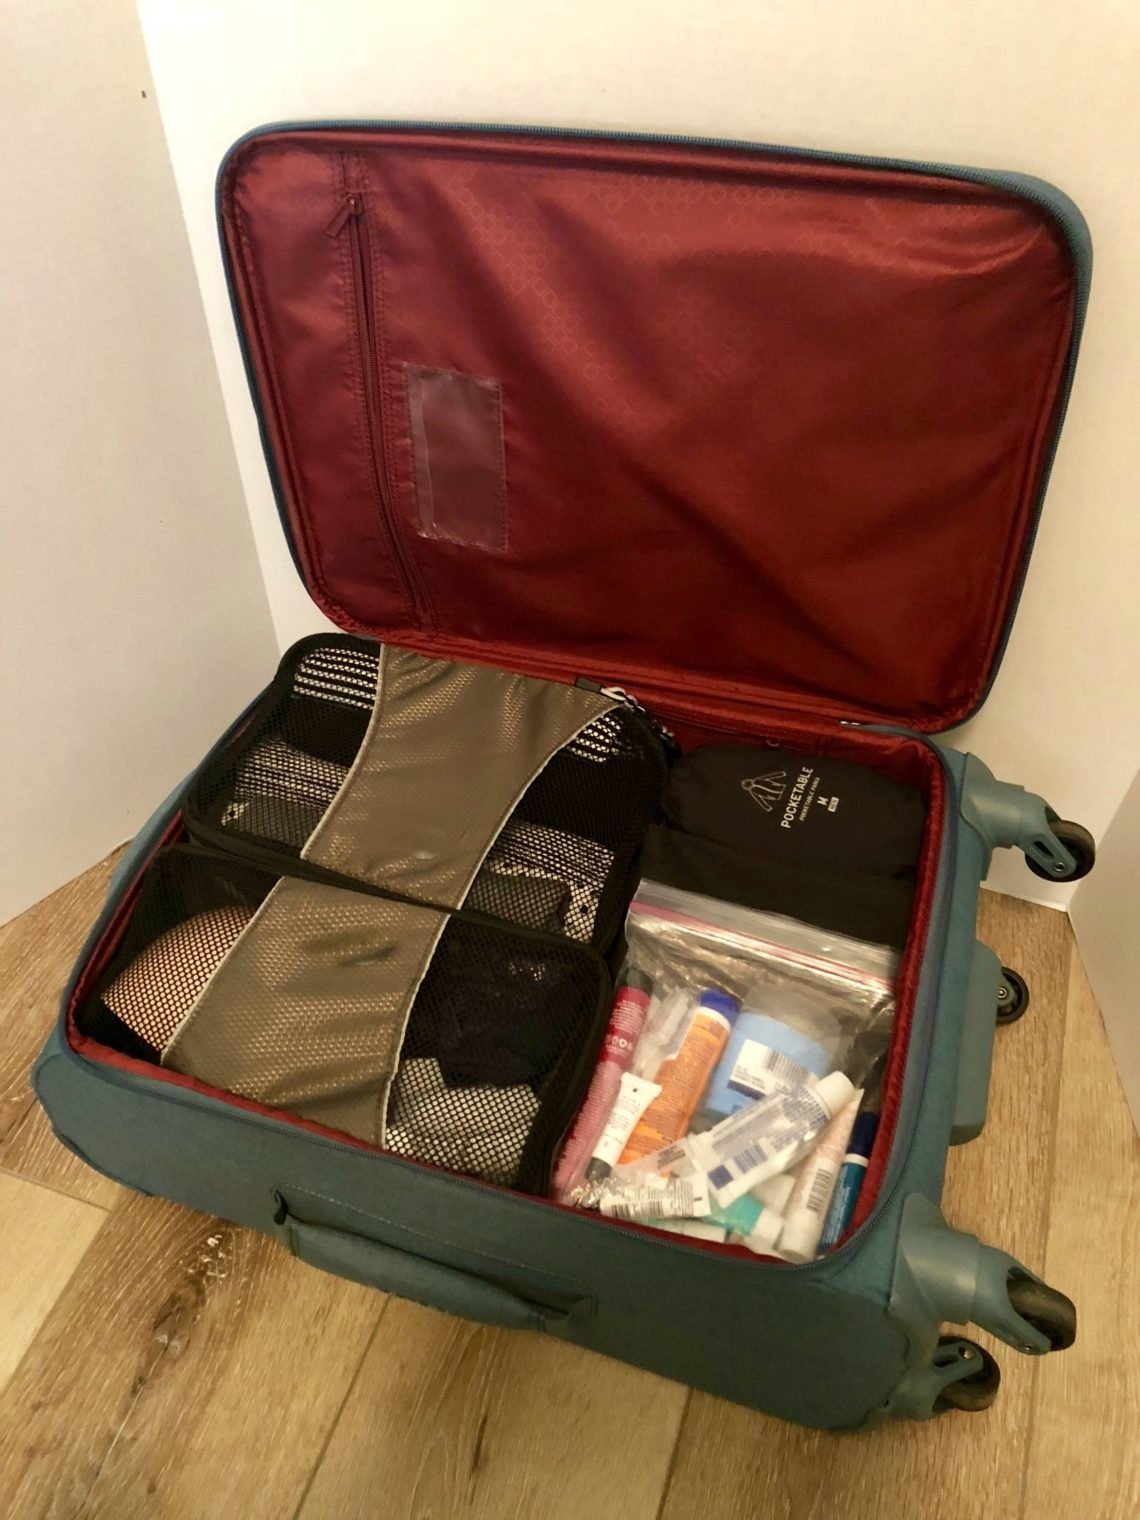 Top Ten Reasons To Pack Light And How To Do It With Tips Tricks And A Packing Checklist Packing Light Suitcase Packing Packing Bags Travel